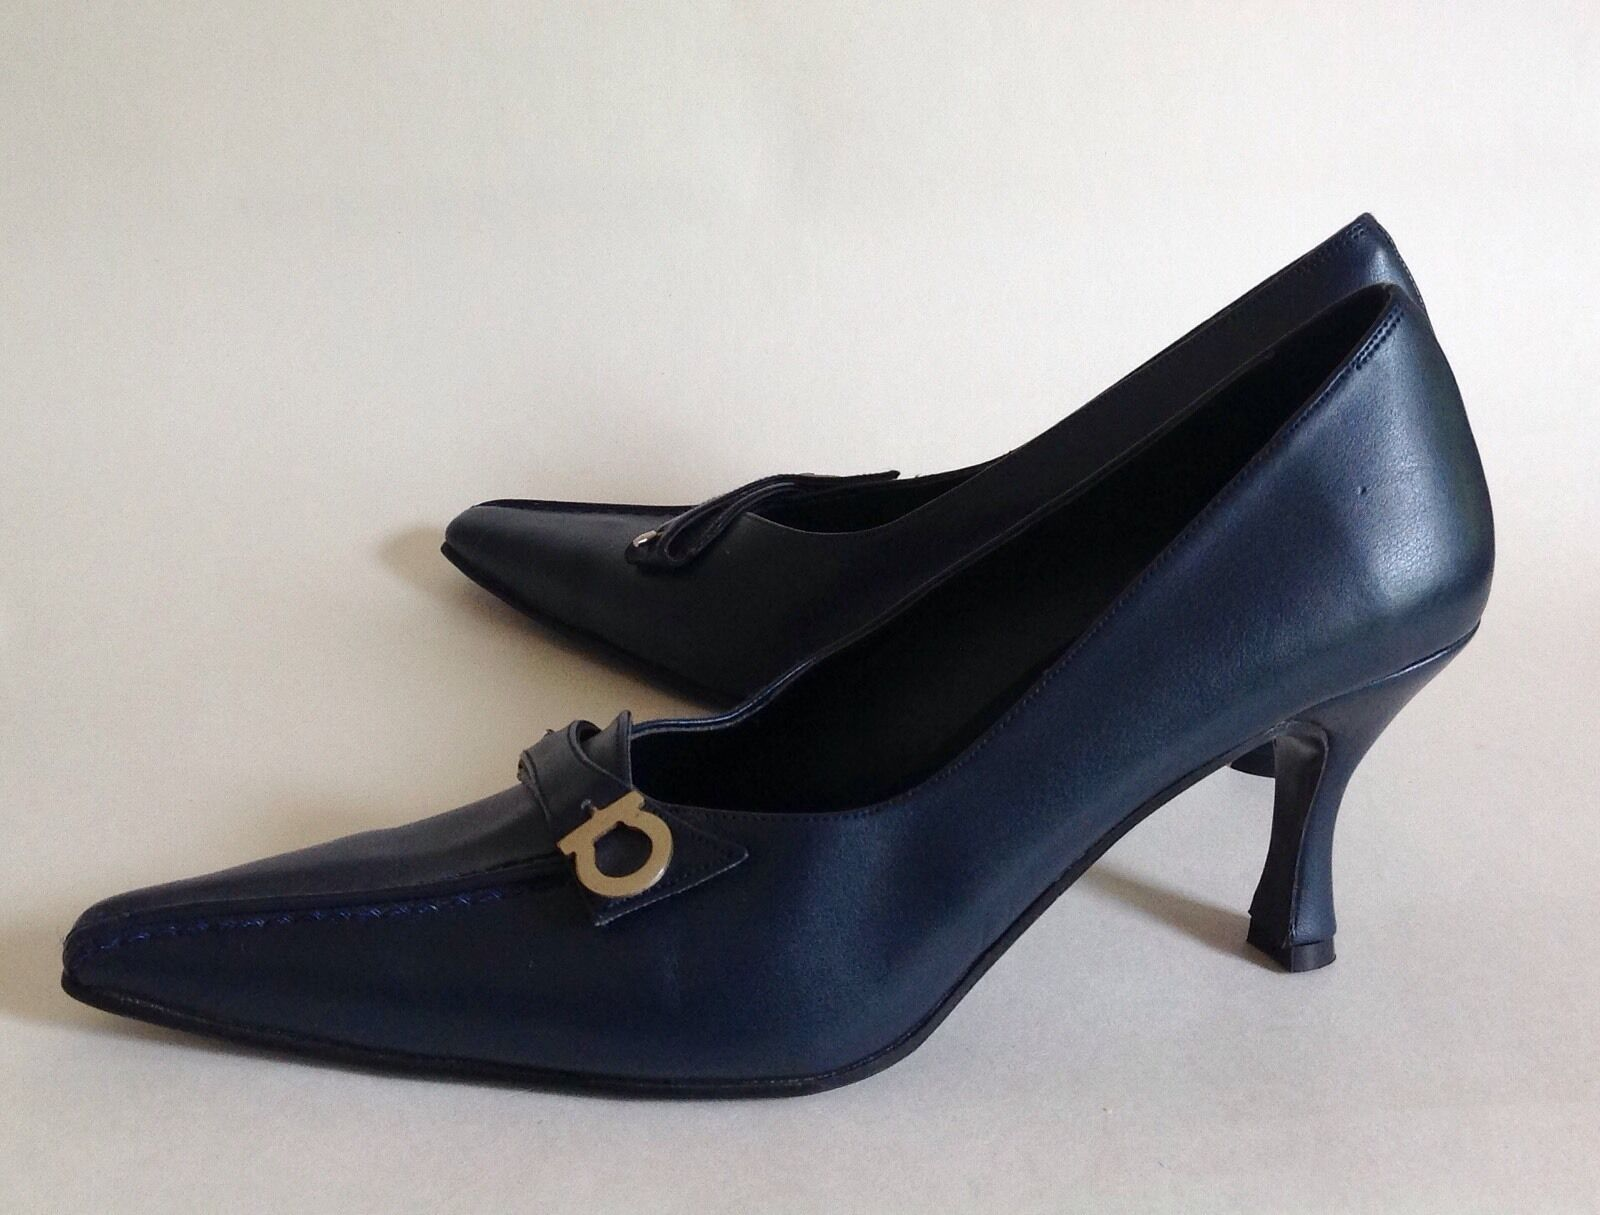 Sheshtawy Mode Court shoes Business Retro bluee Faux Leather Leather Leather 3  Heels UK 3 EU 36 26fec3